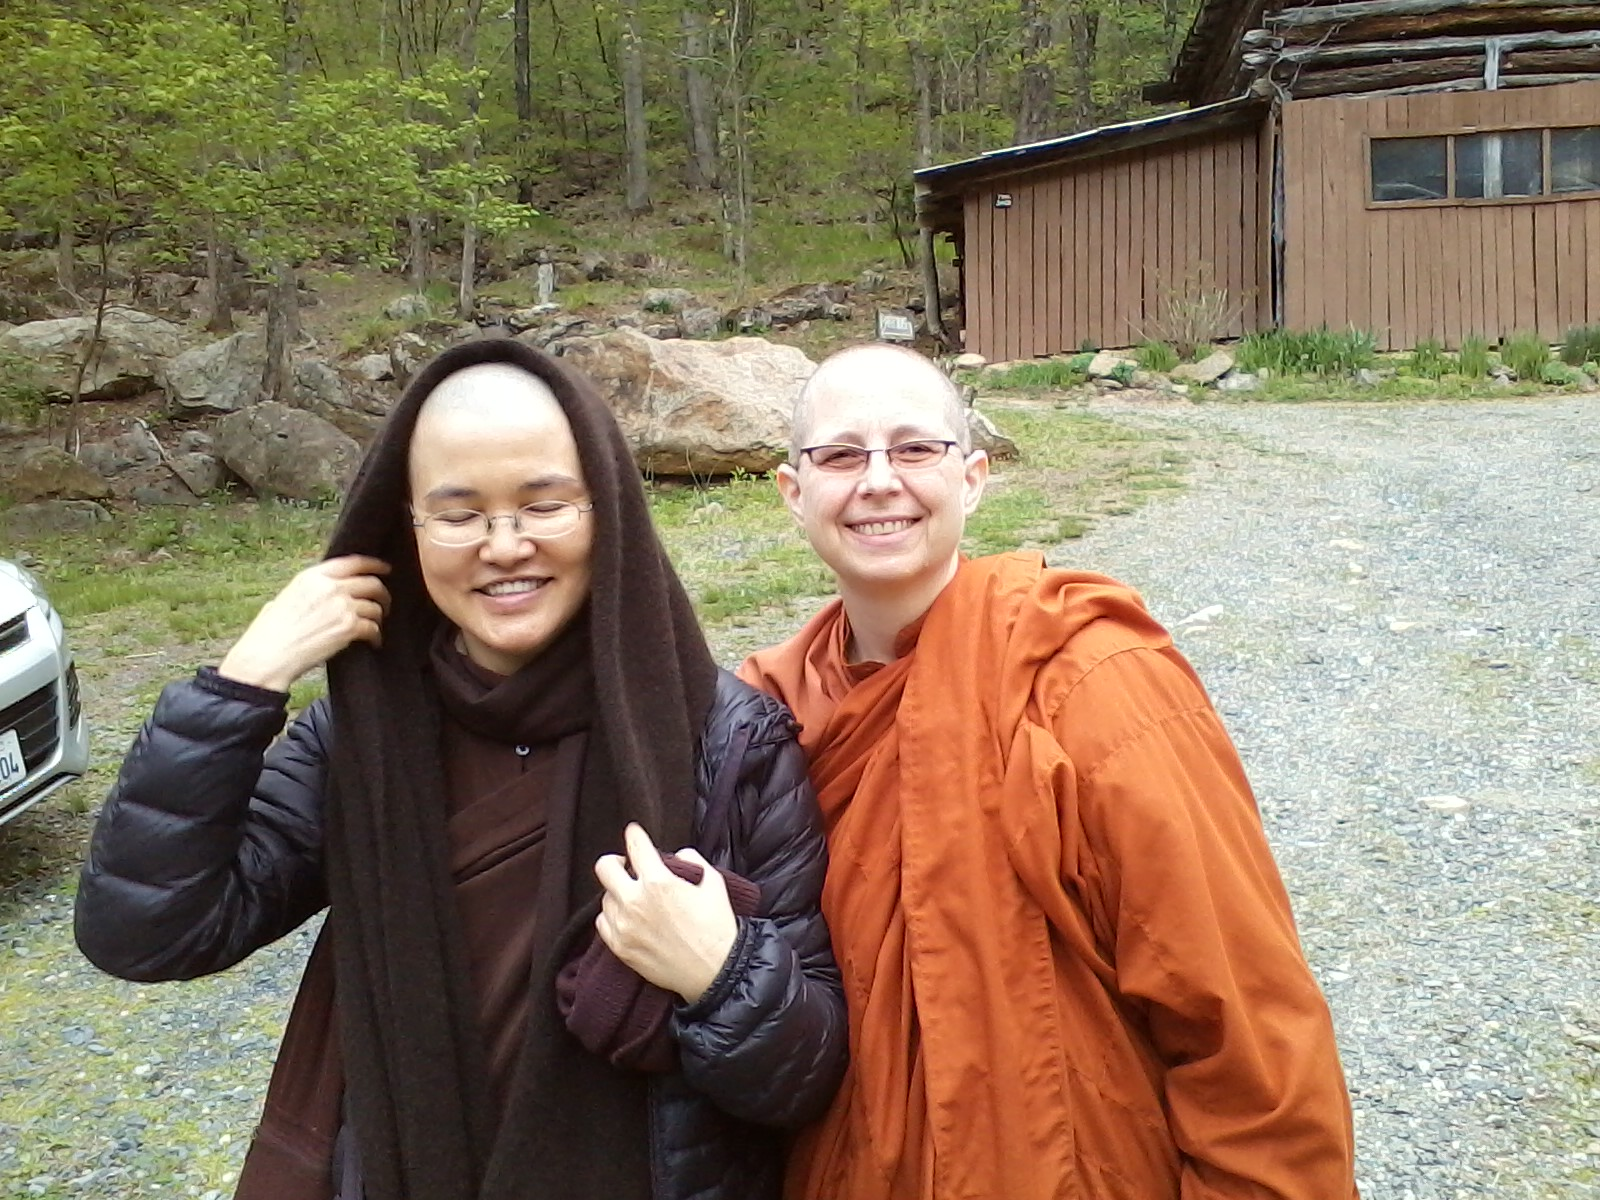 Southern Dharma Retreat Center, North Carolina, USA (25 April - 2 May 2013)